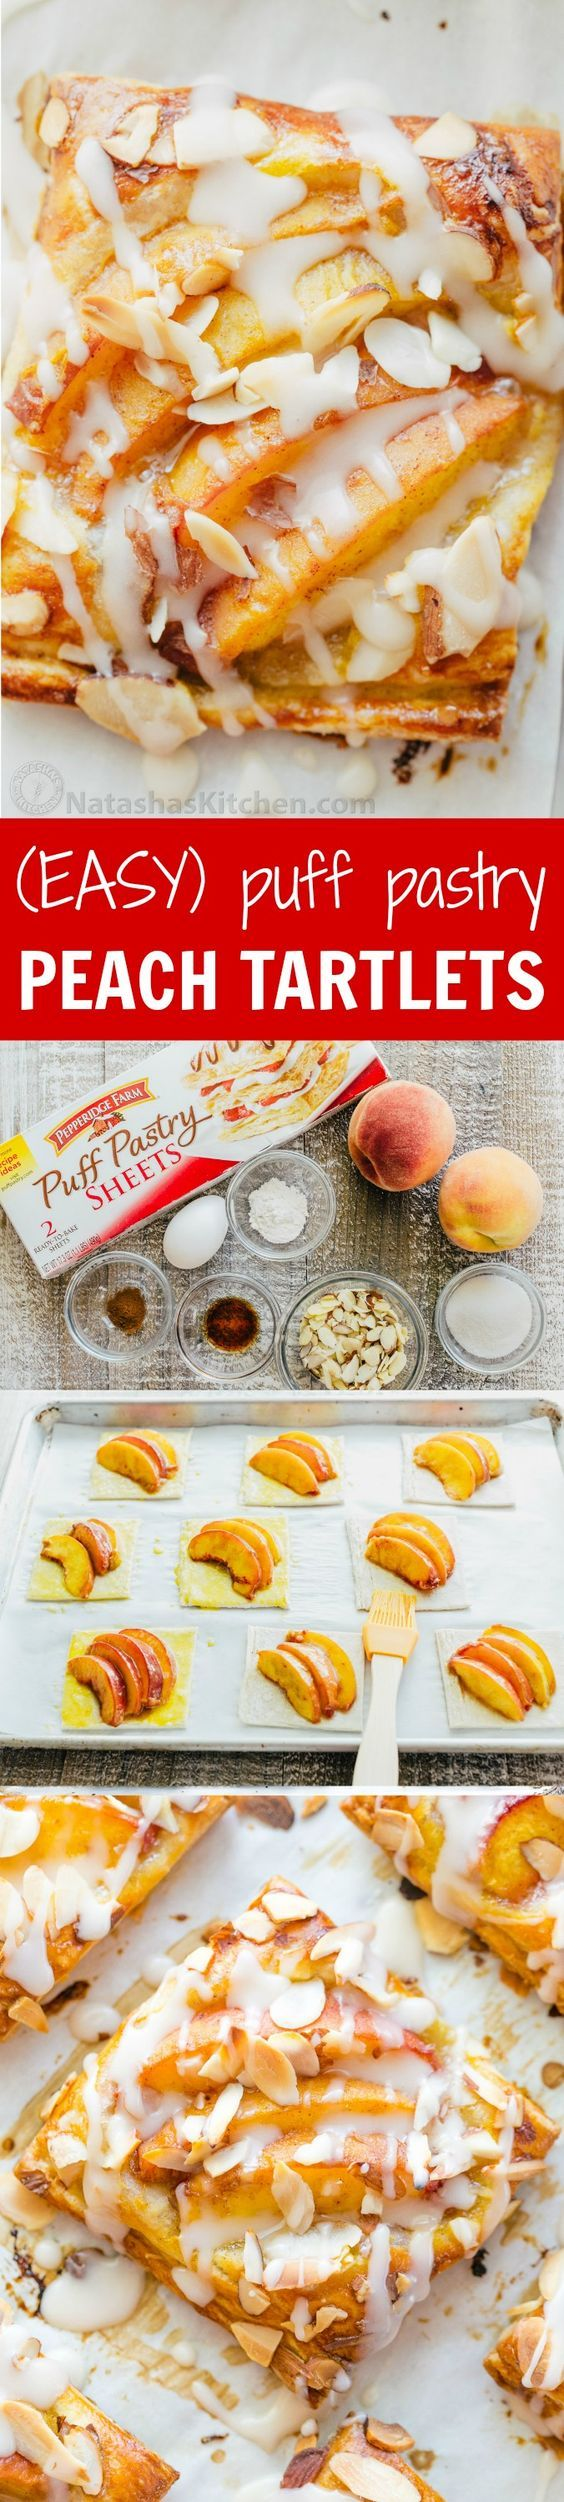 Peach tartlets with juicy peaches, toasted almonds & vanilla glaze over a flaky crust. Puff pastry peach tartlets always get RAVE REVIEWS! Easy, excellent..